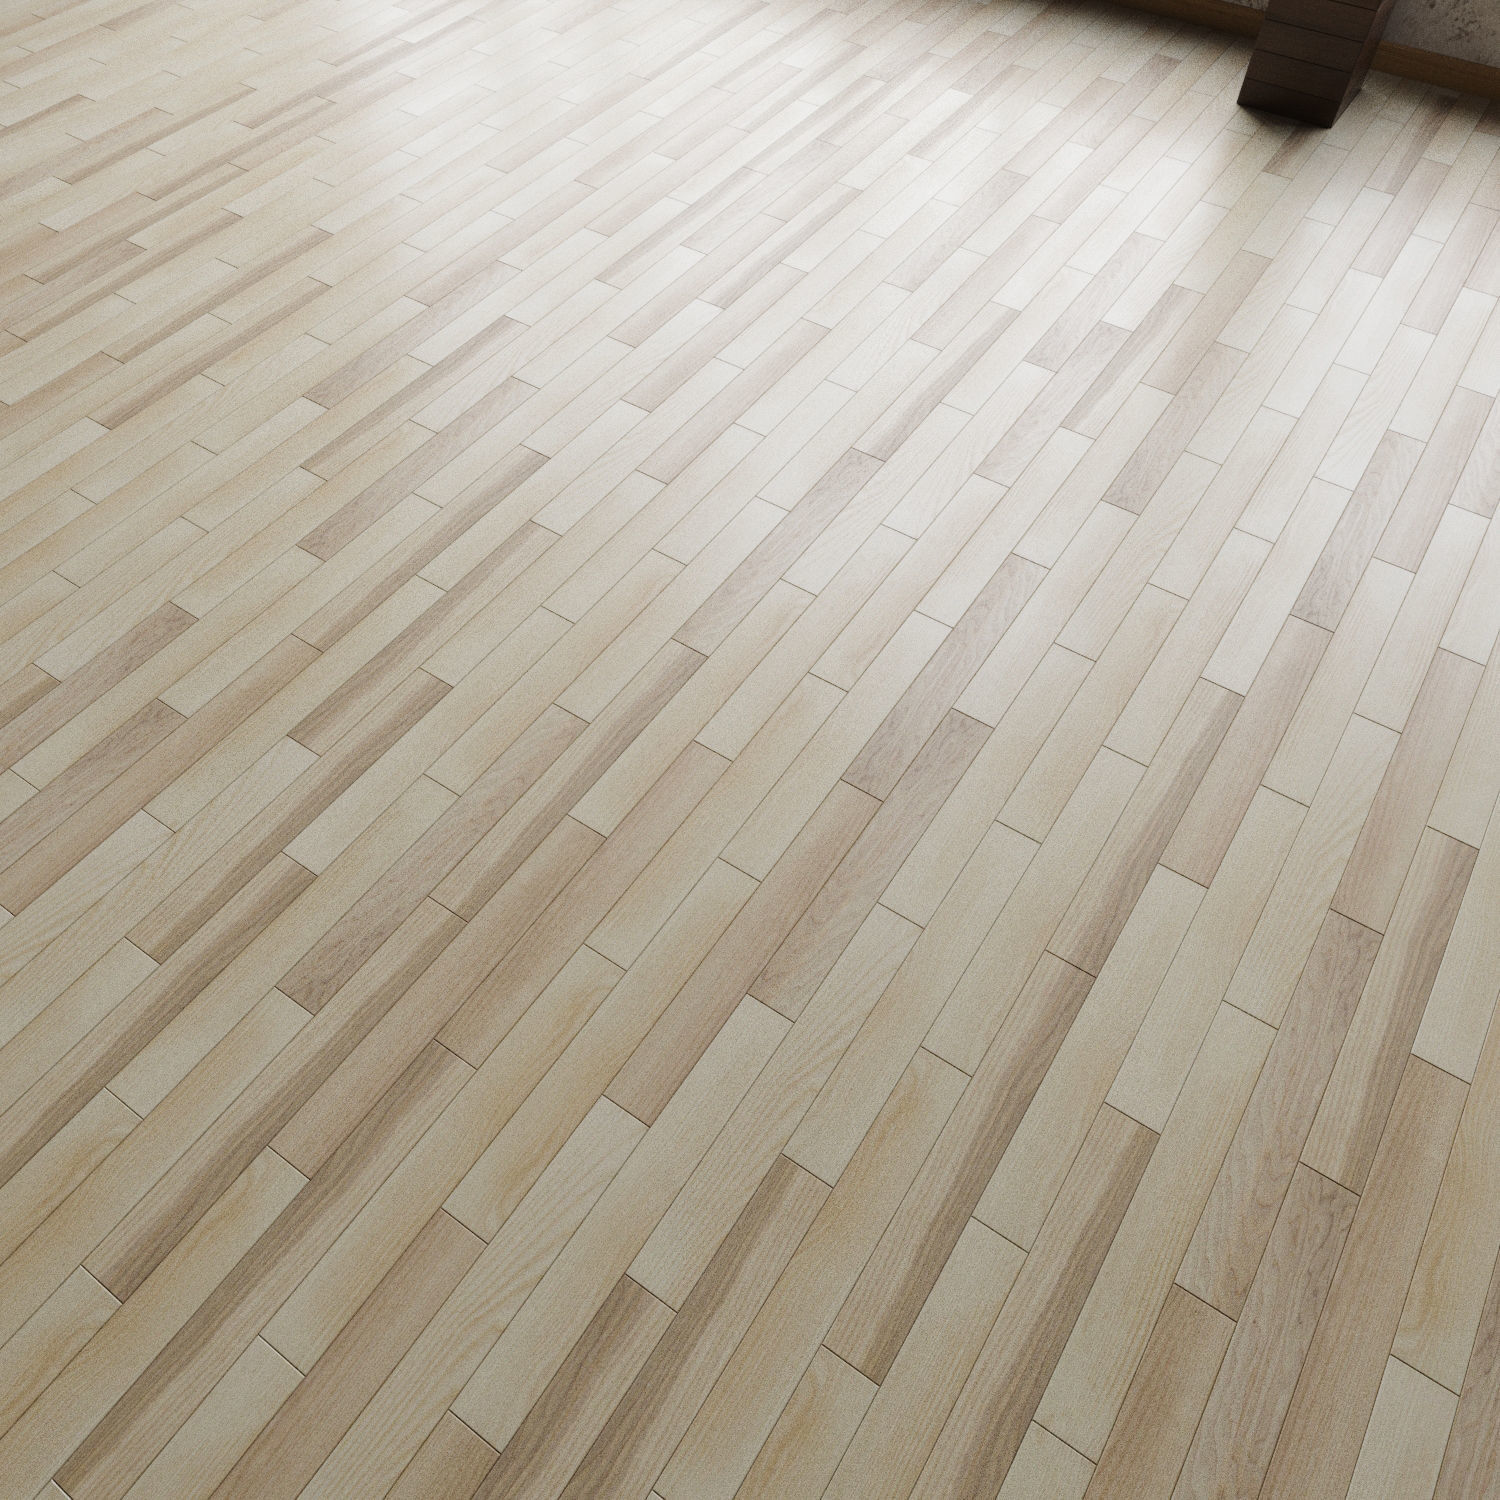 Flooring Wood 22 3D Model Max Obj Fbx Mtl 4